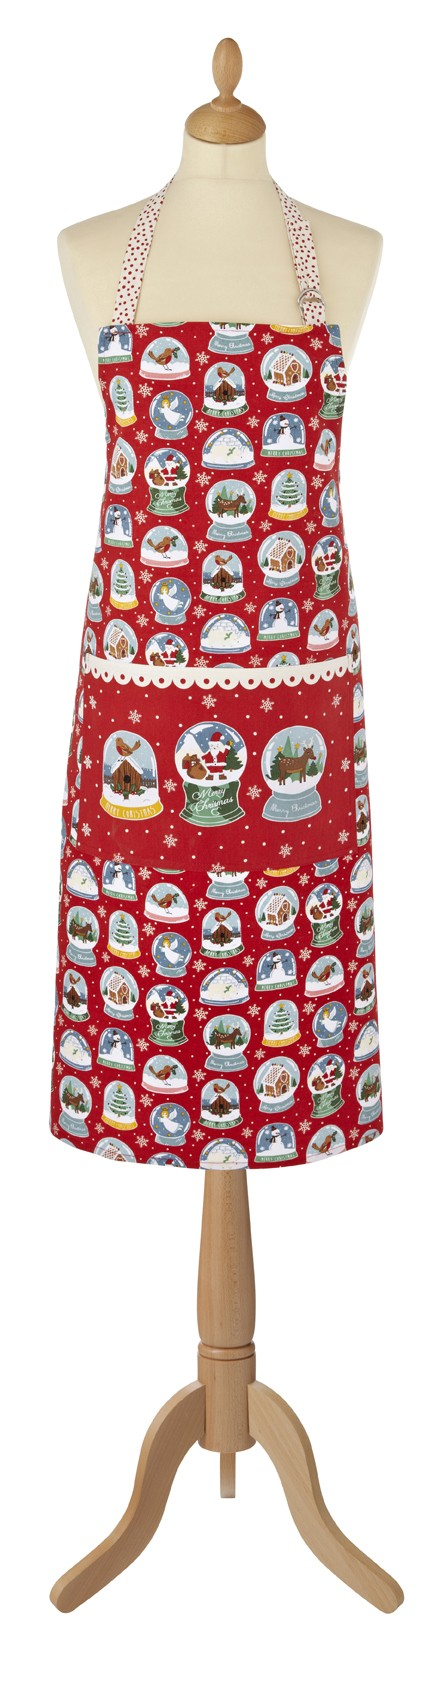 Christmas Snow Globes Cotton Apron